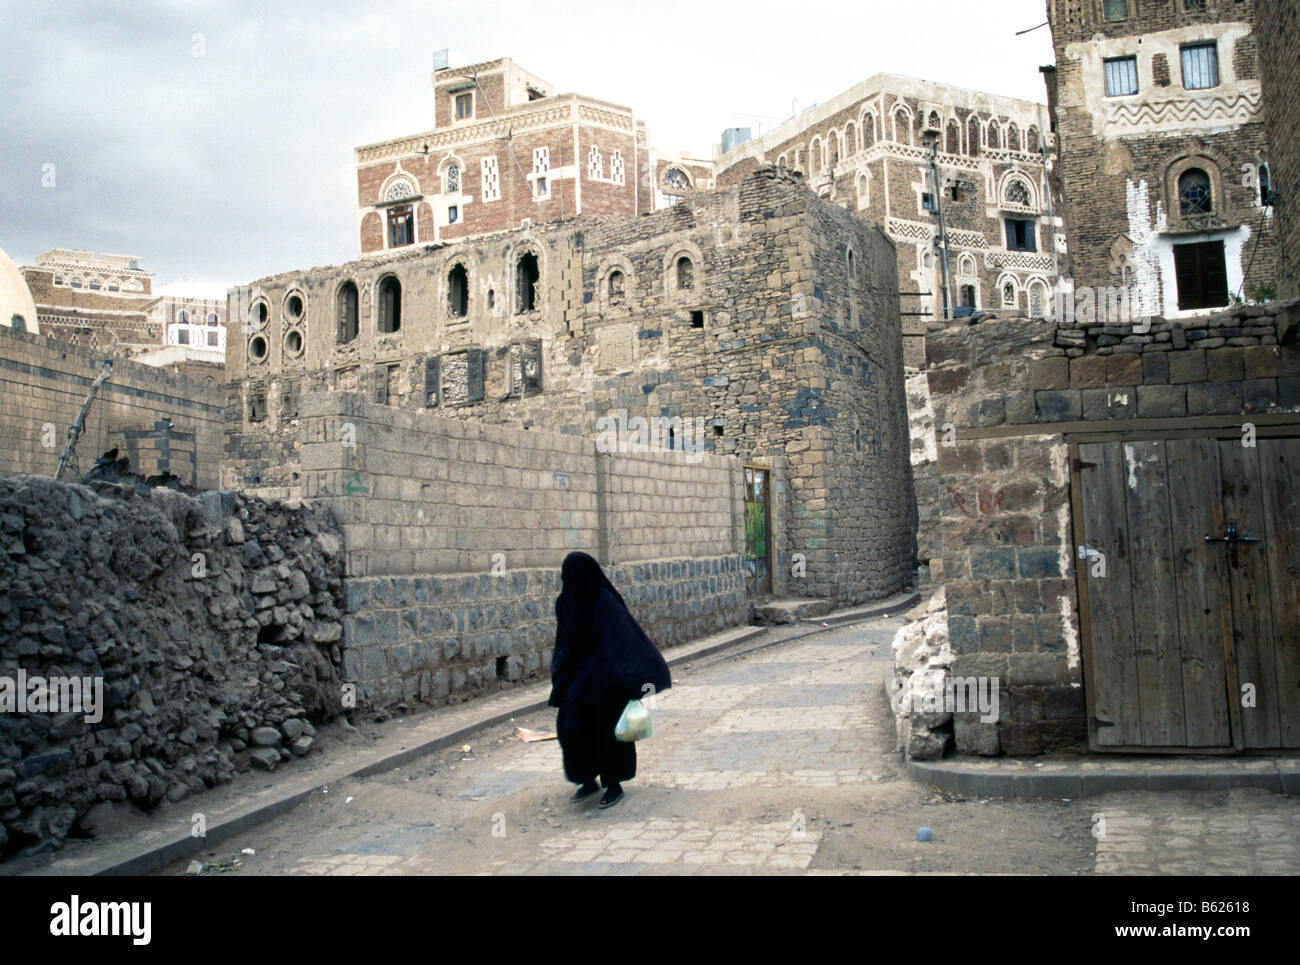 Cloaked woman, historic town centre, Sanaa, Yemen, Middle East - Stock Image